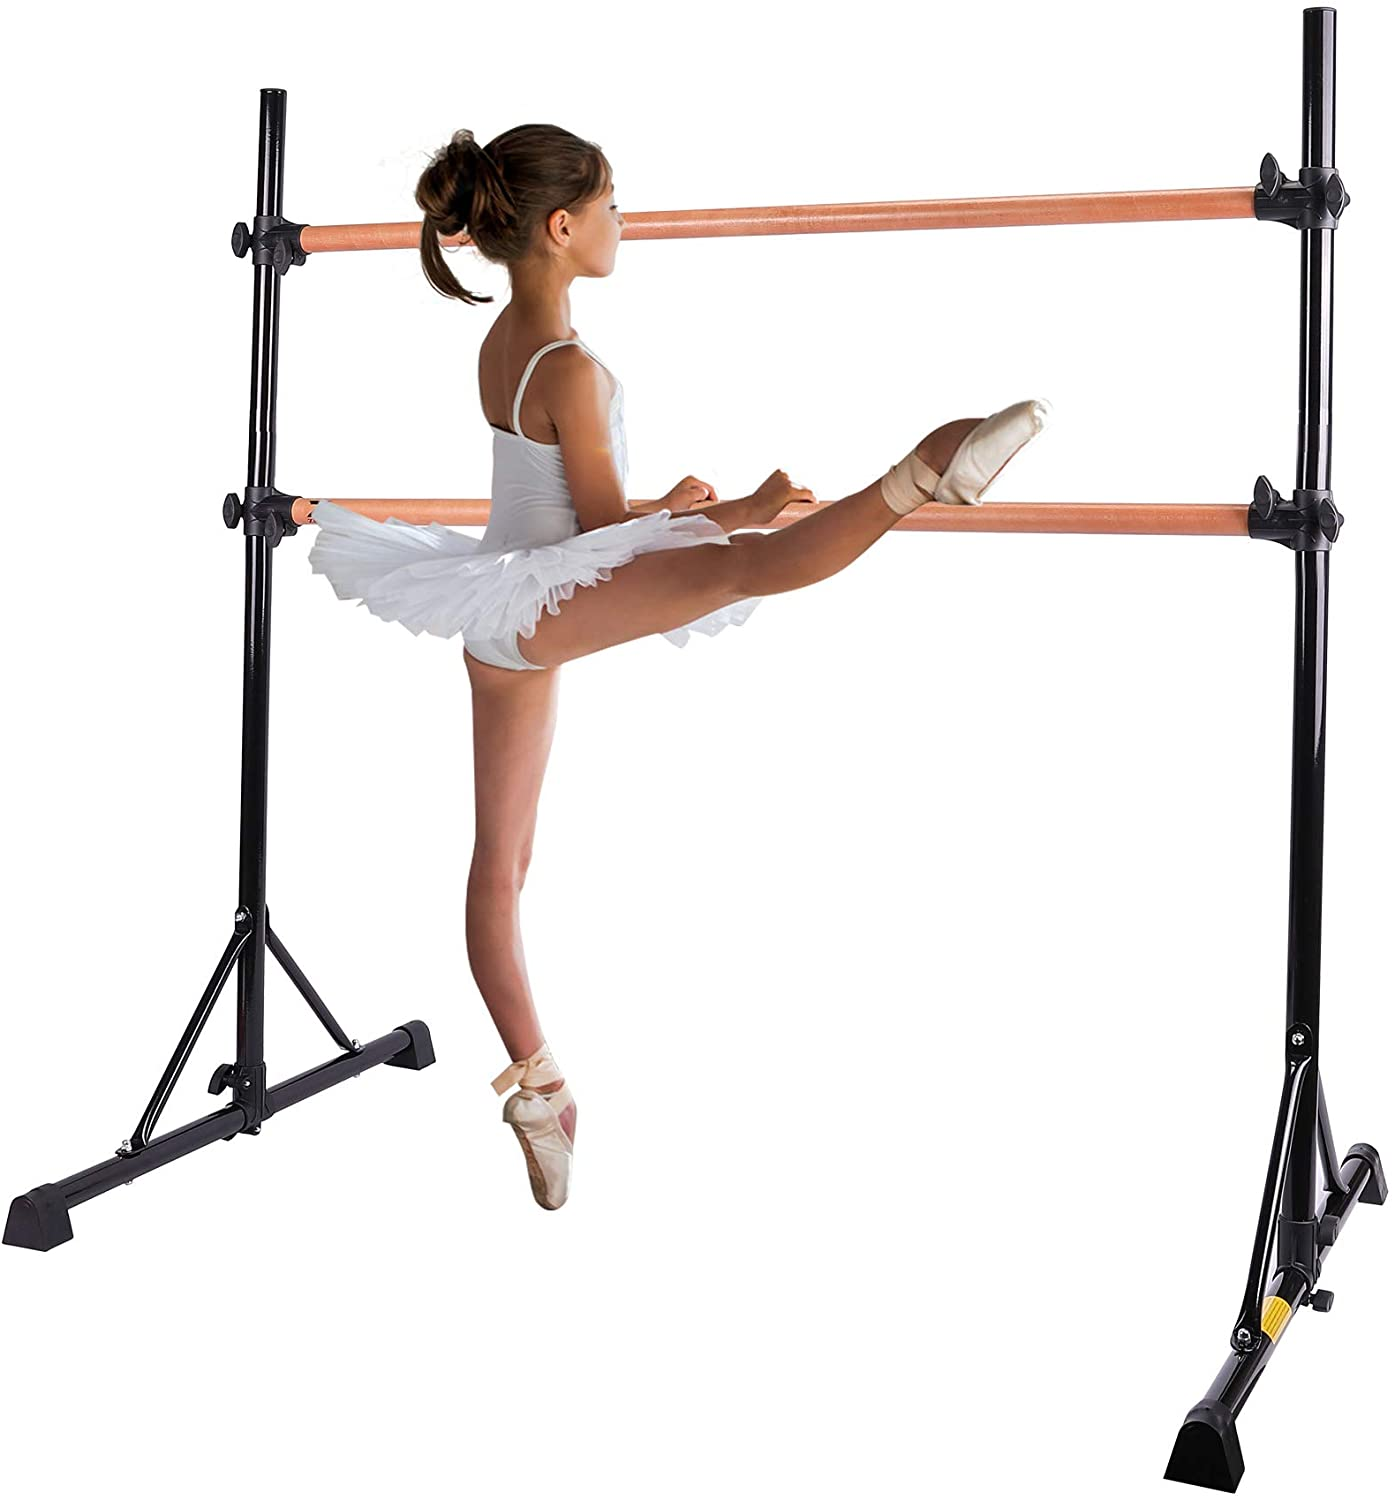 4FT Ballet Barre Bar Freestanding Single Dance Bar Studio Stretch Training Home